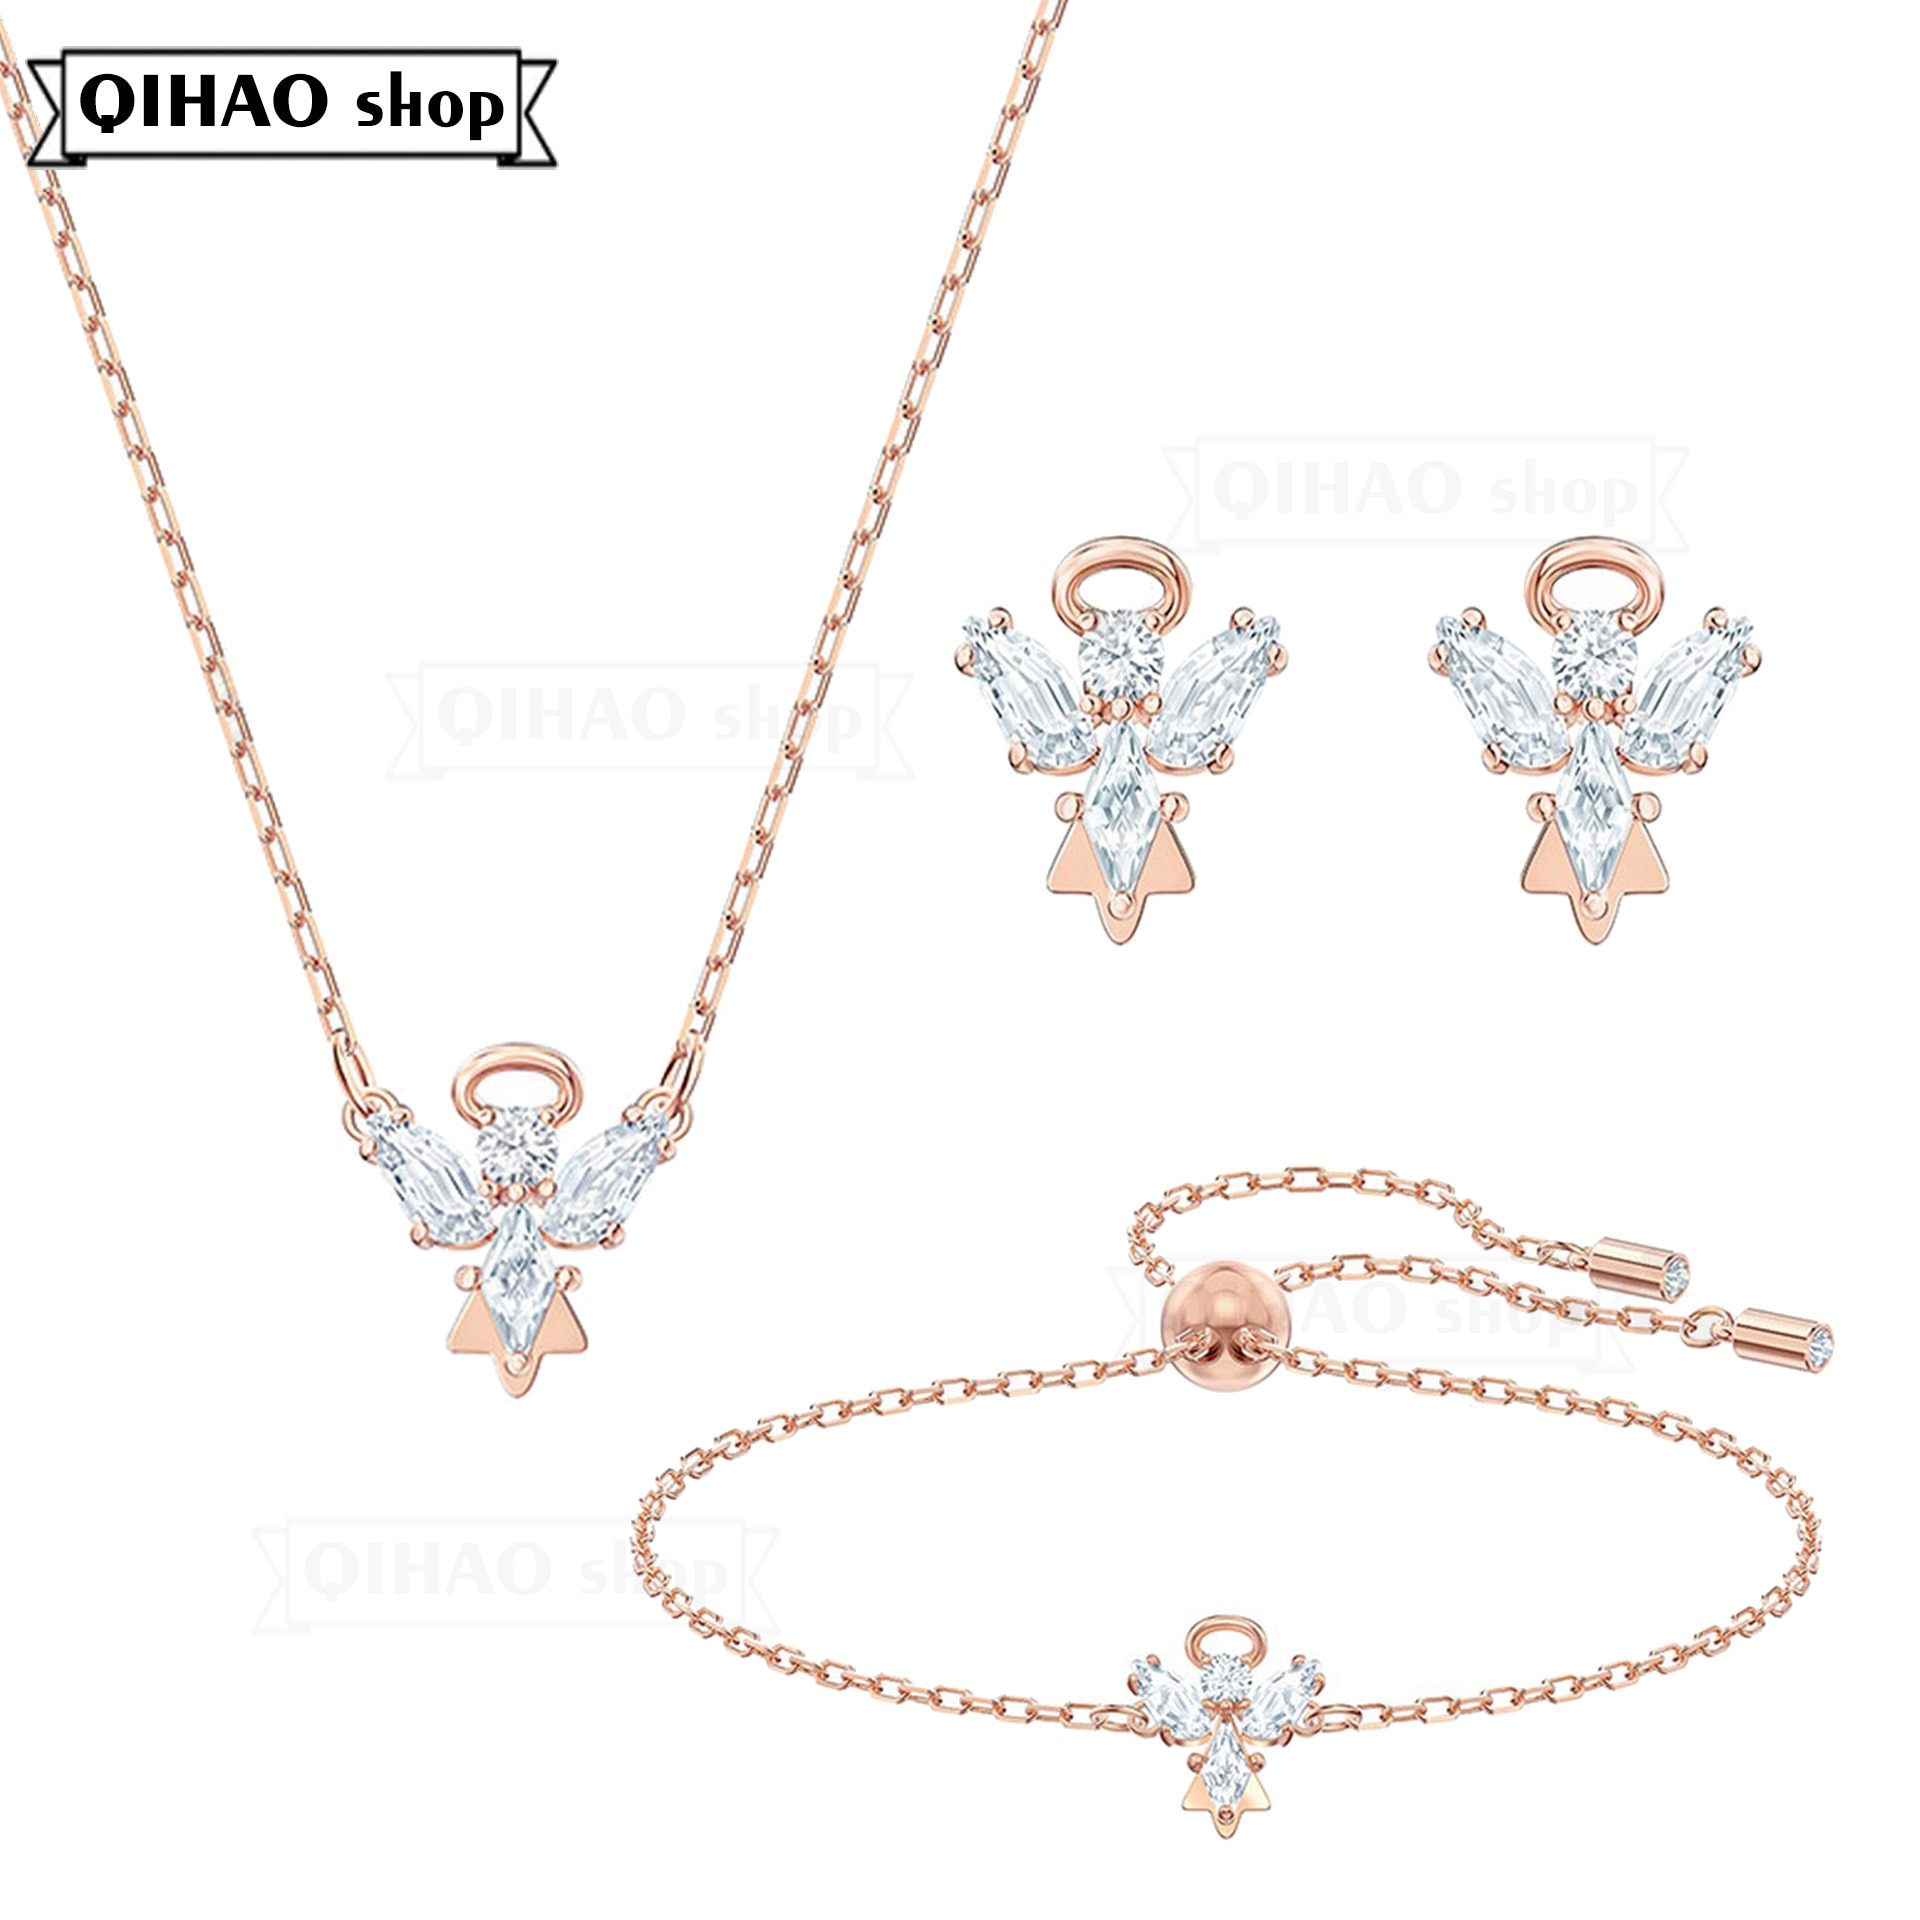 SWA Fashion Jewelry High Quality 2021 New Angel Wing Exquisite Crystal Charm Women's Pendant Necklace Romantic Gift